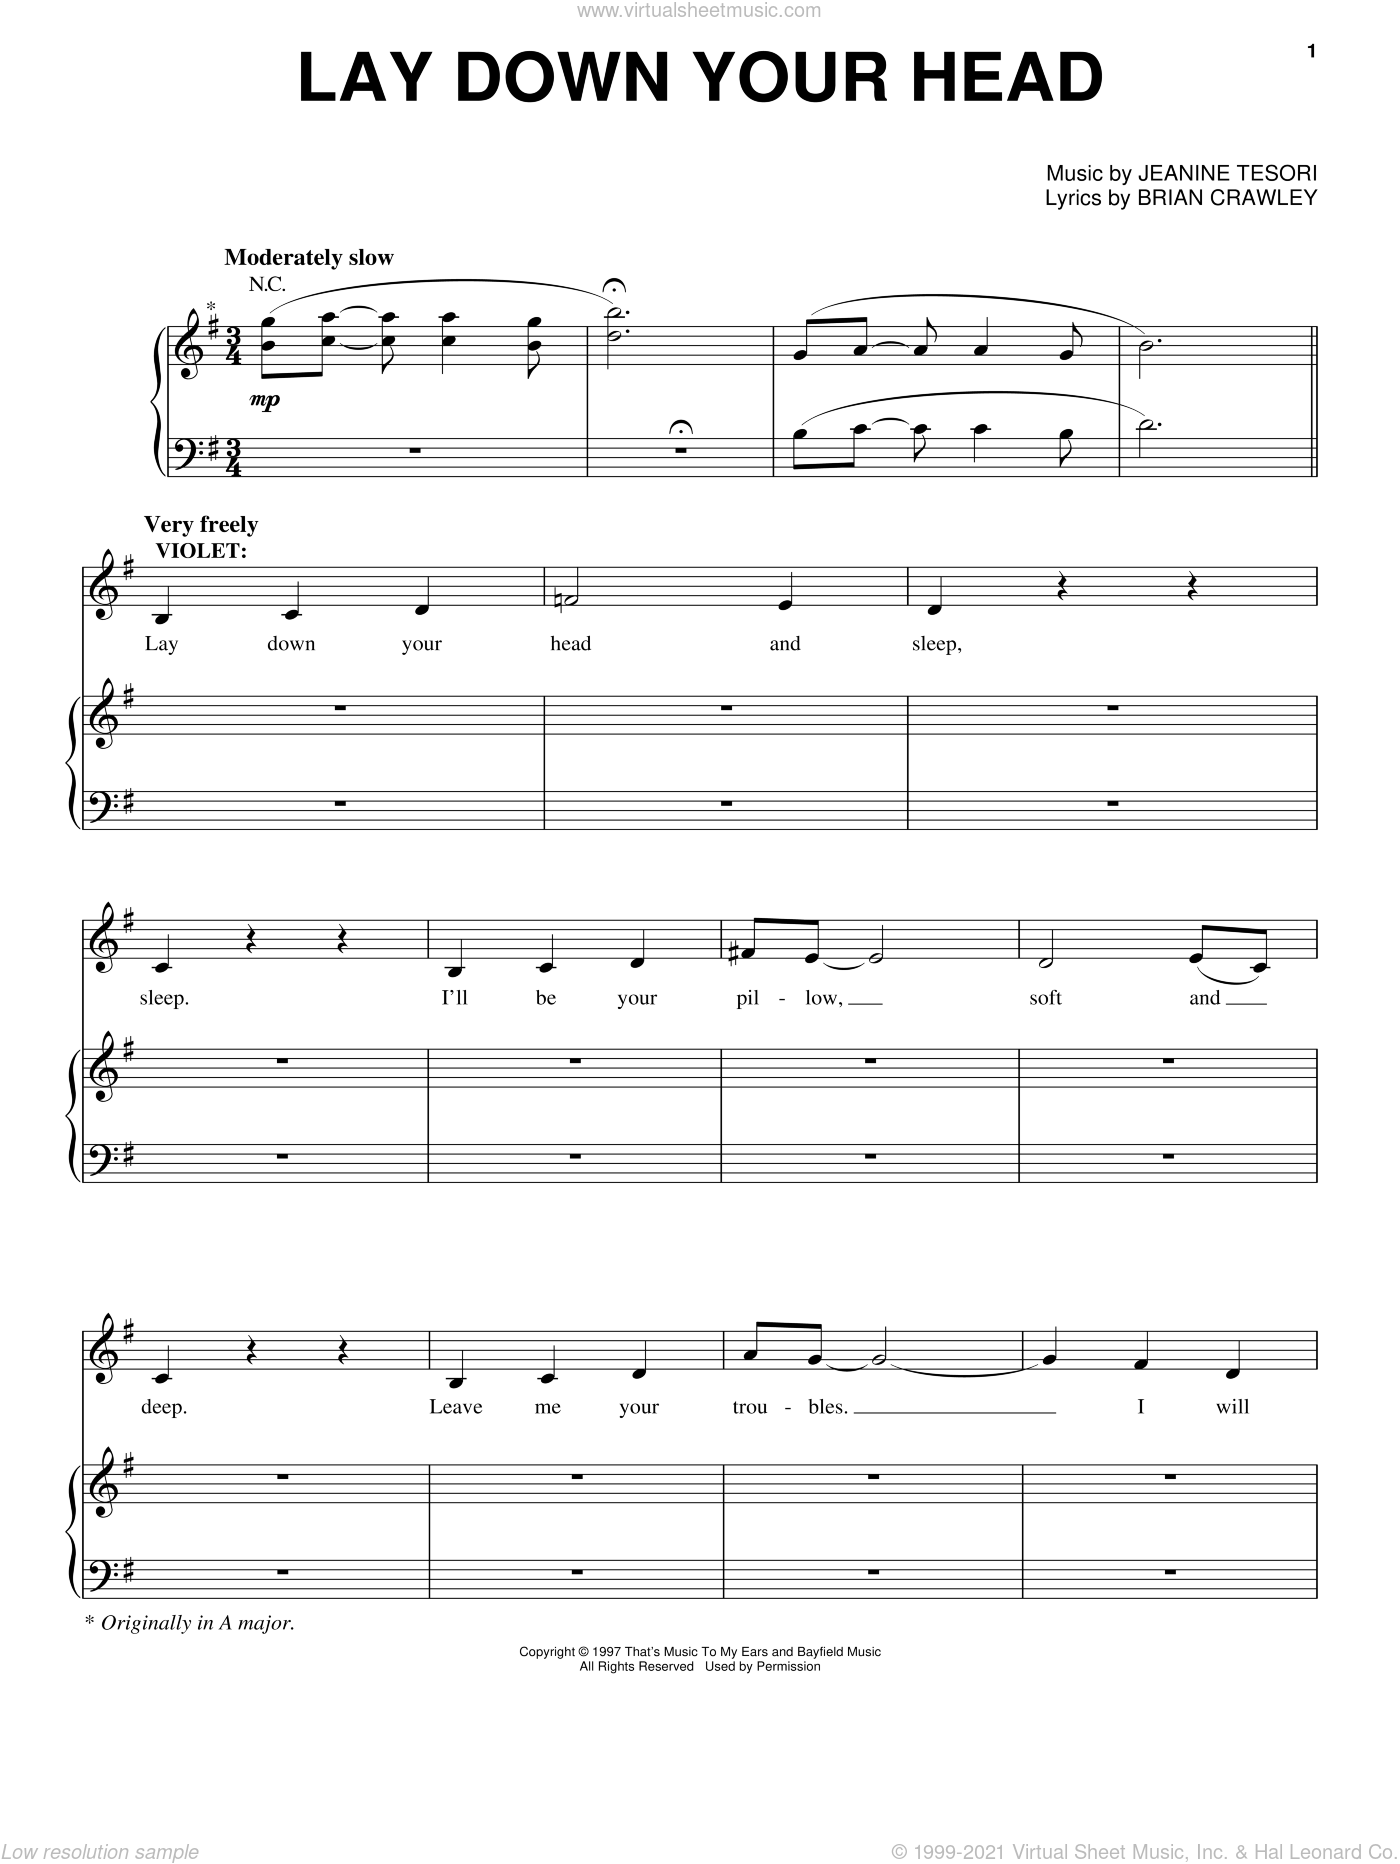 Lay Down Your Head sheet music for voice and piano by Jeanine Tesori, Audra McDonald and Brian Crawley, intermediate skill level